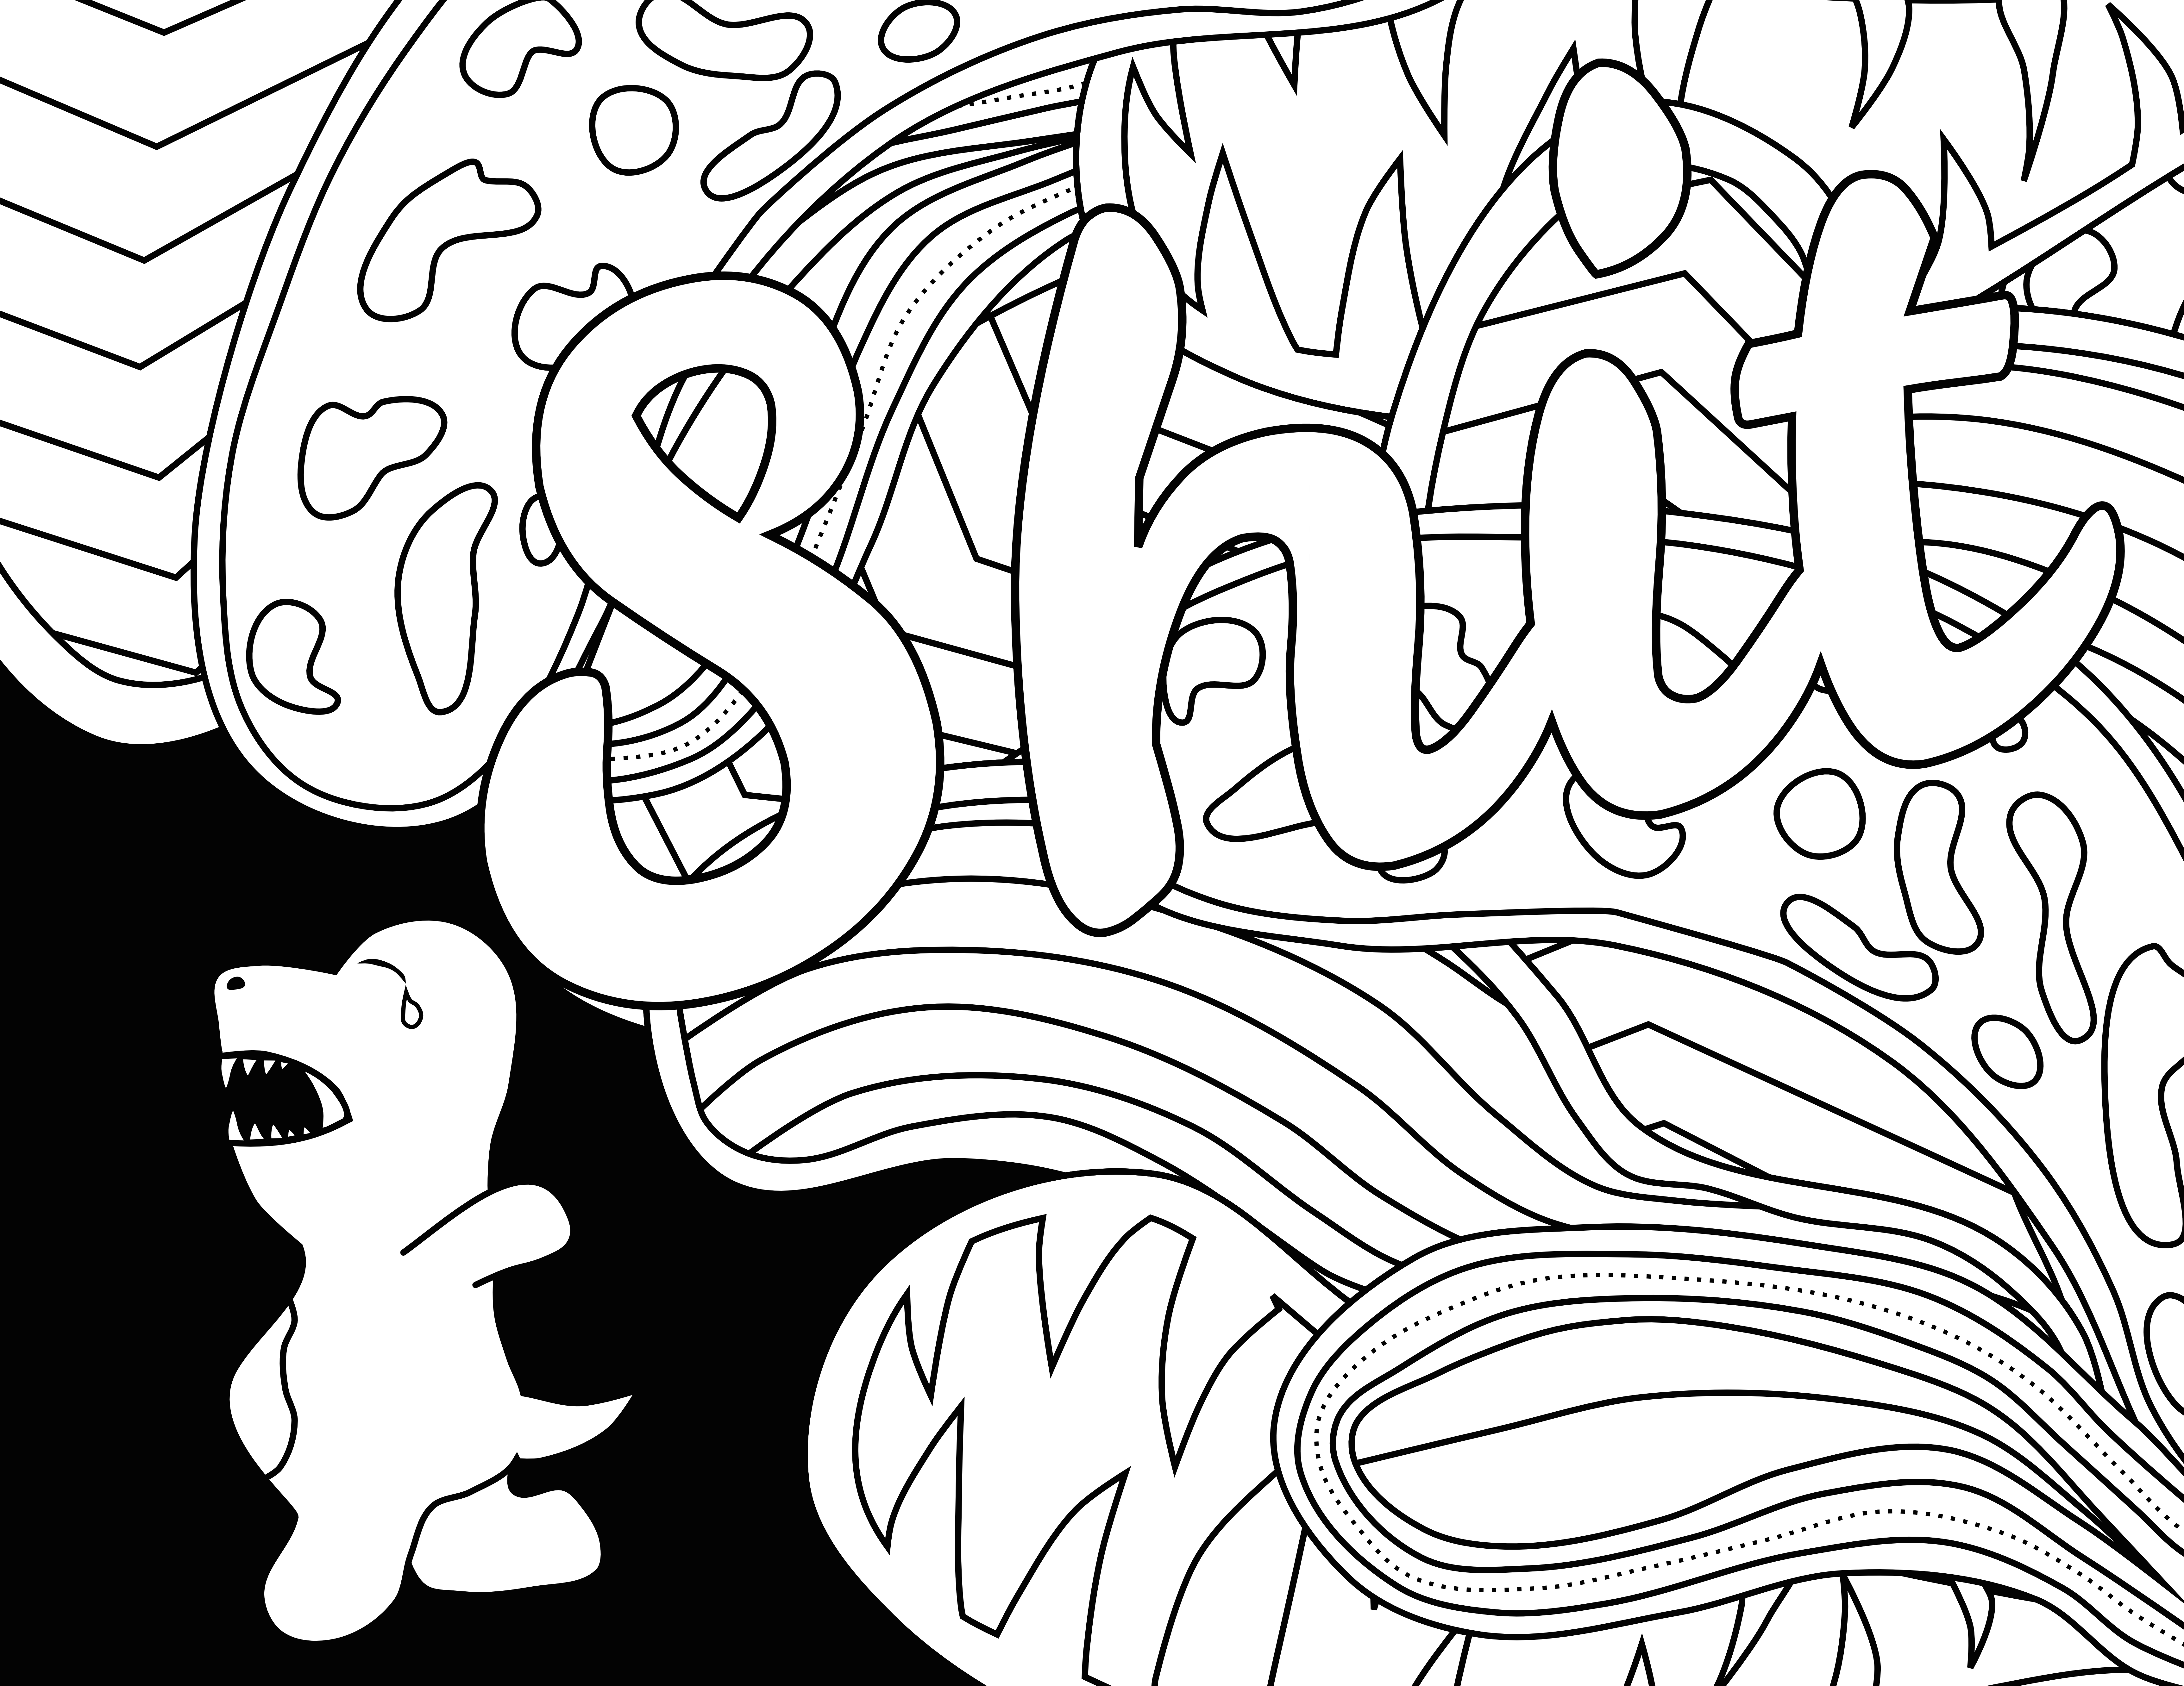 Shit Swear Word Coloring Page Adult